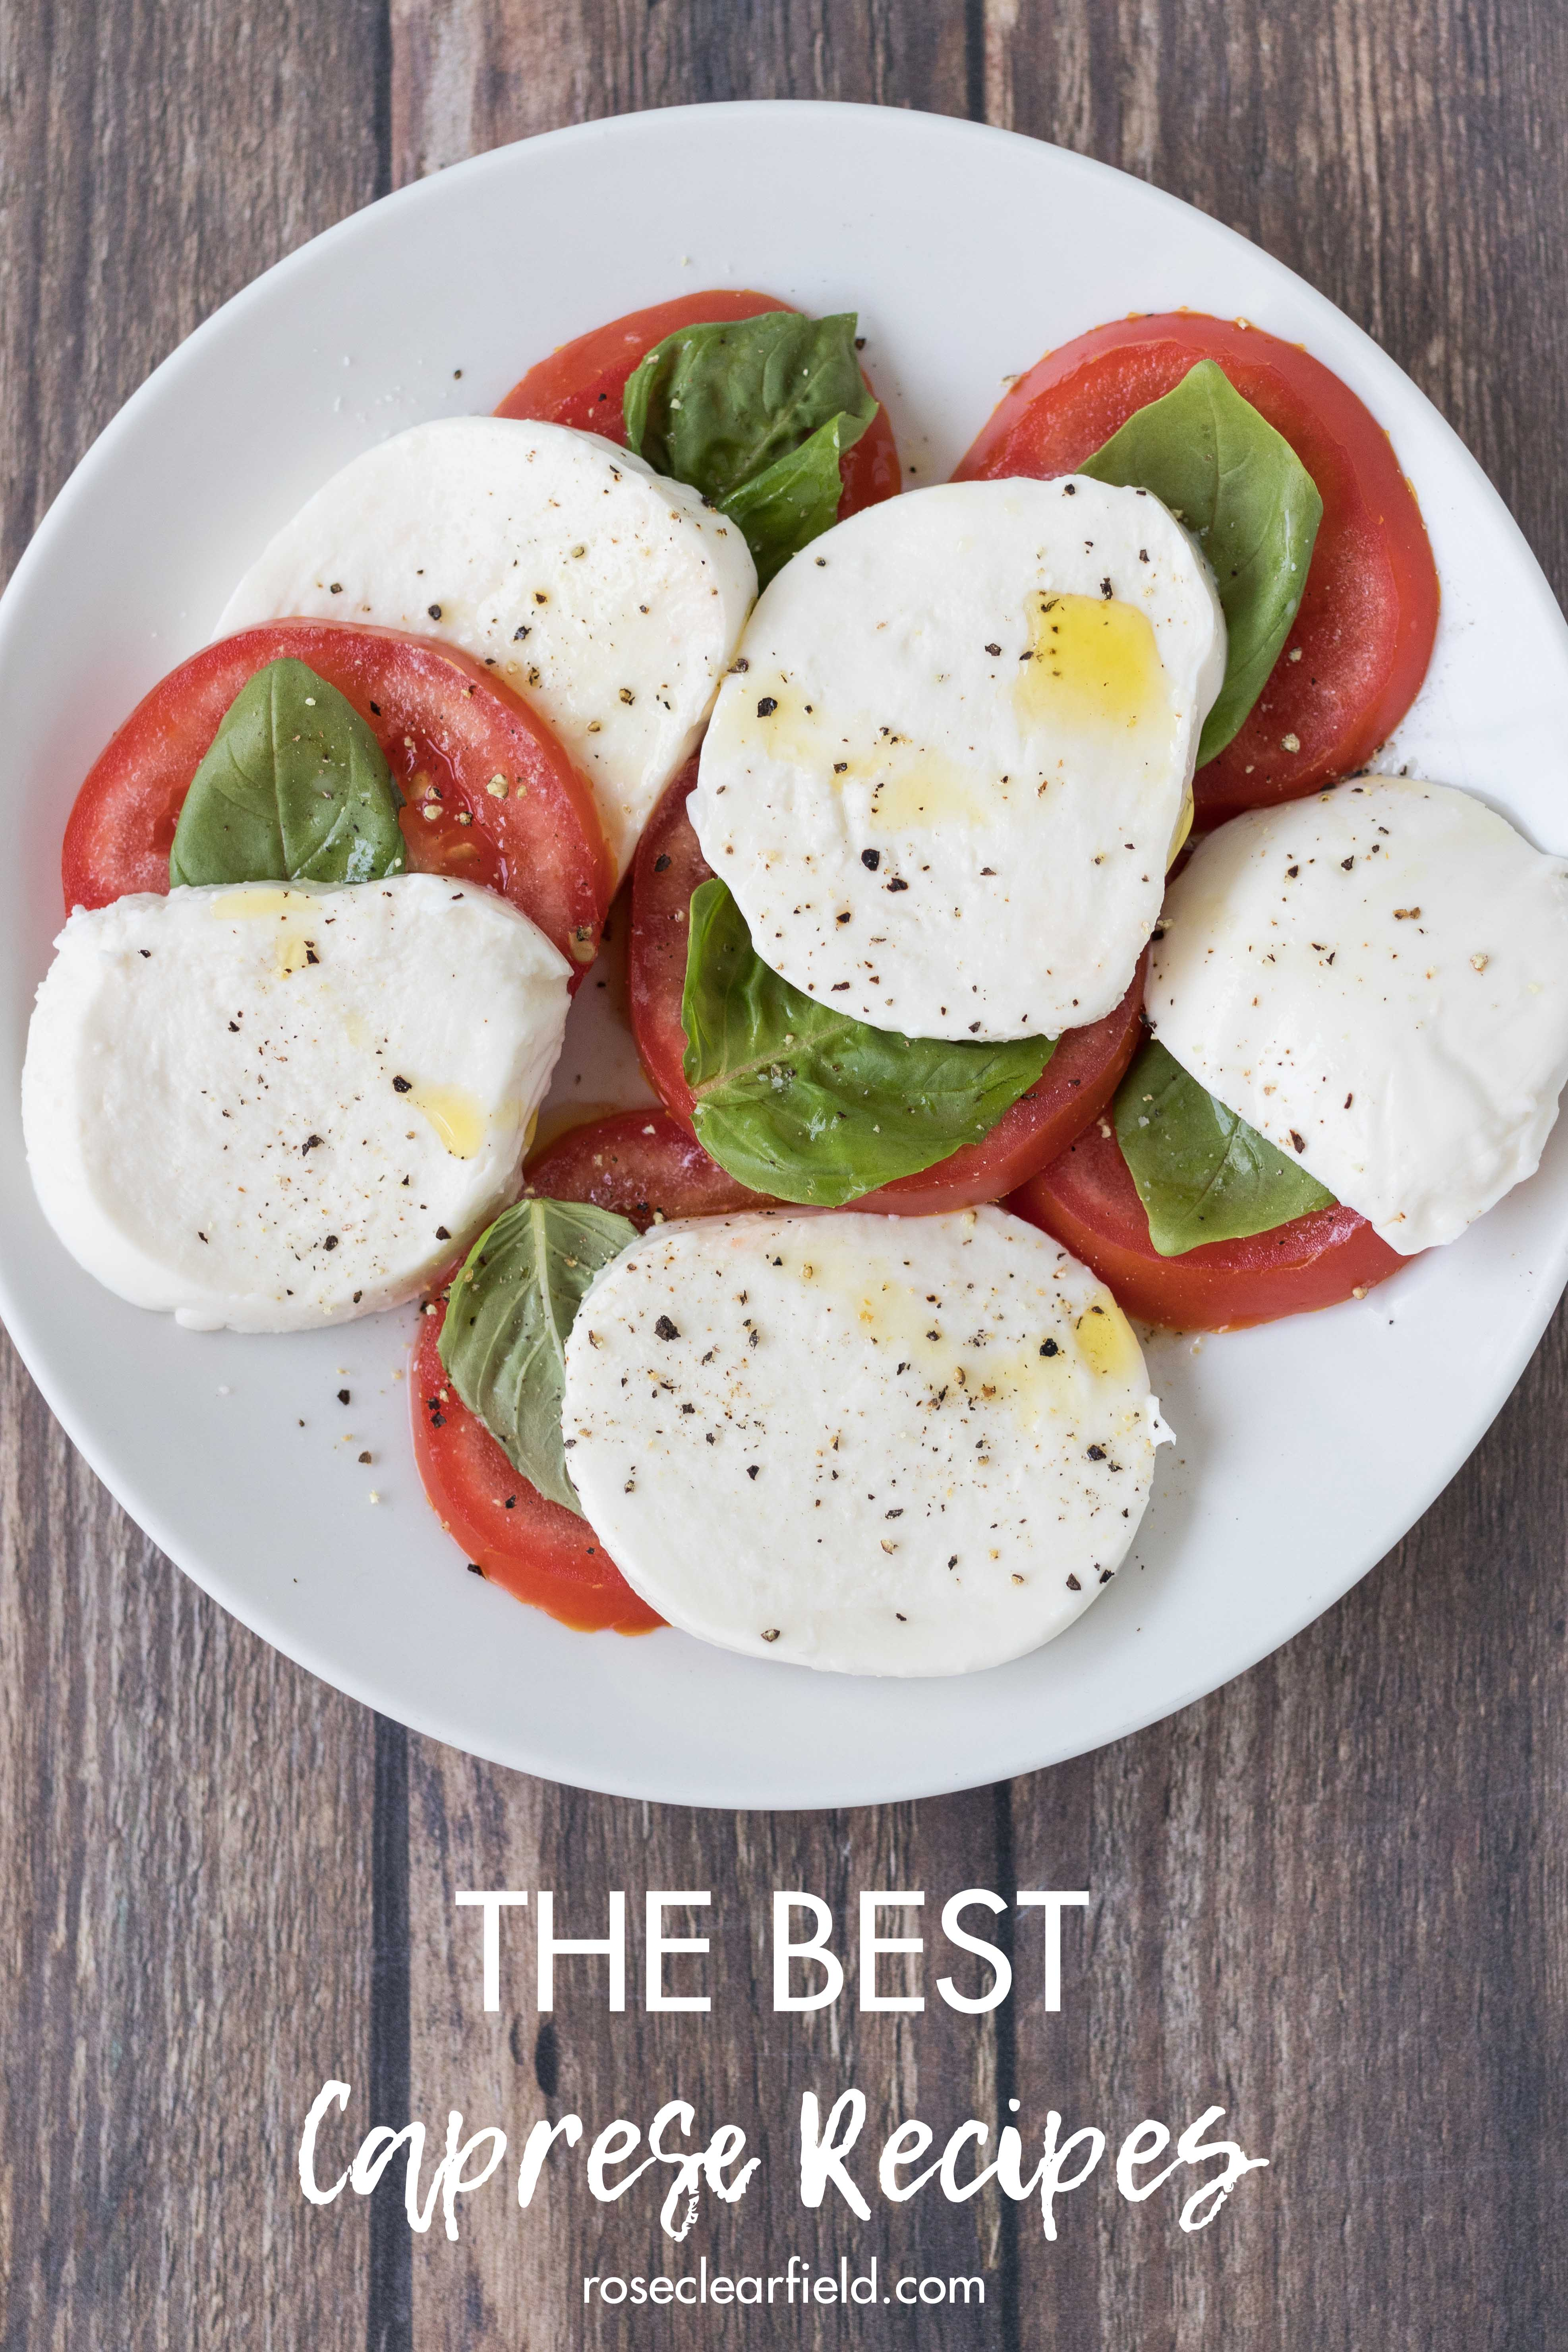 The best caprese recipes for summer tomatoes and basil and fresh mozzarella. Skewers, bruschetta, pasta salad, sandwiches, chicken, and more. #caprese #bestcapreserecipes #summereating | https://www.roseclearfield.com